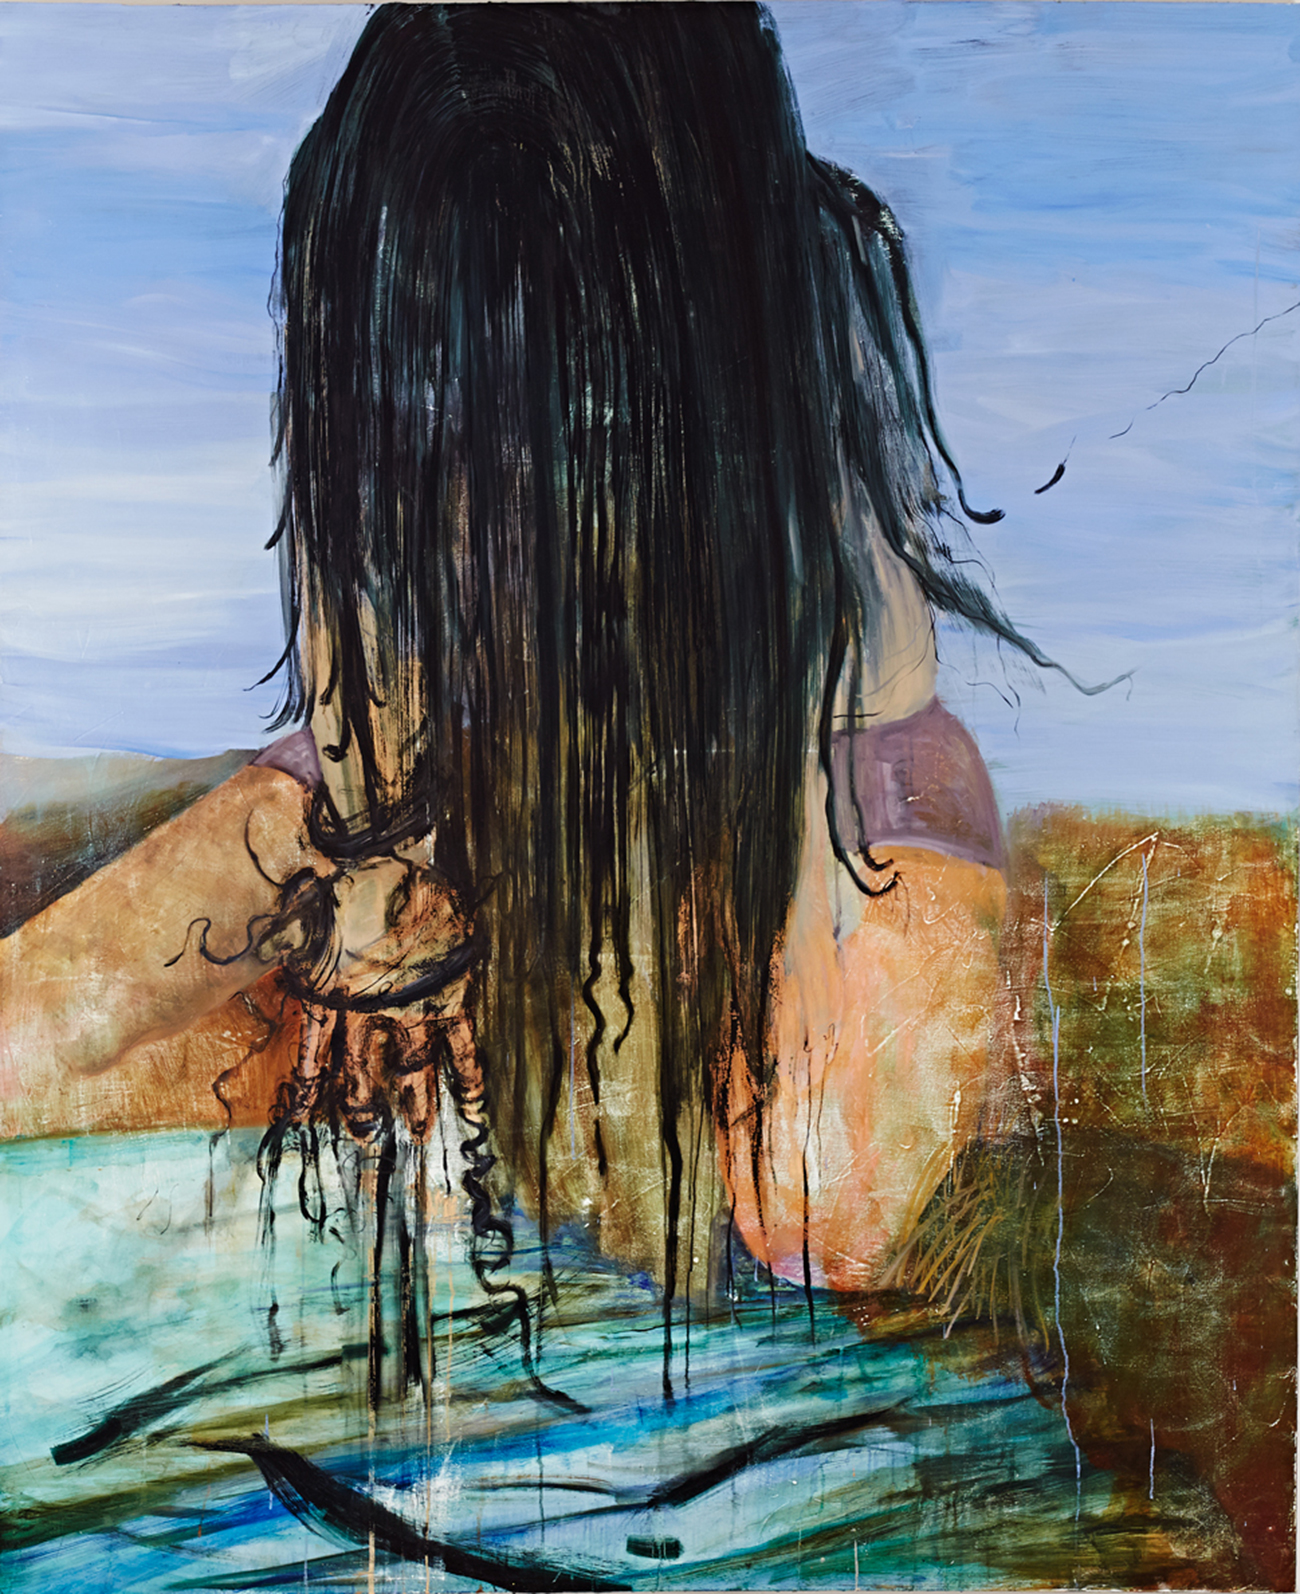 Knots / 2012, oil on canvas, 165 x 200 cm